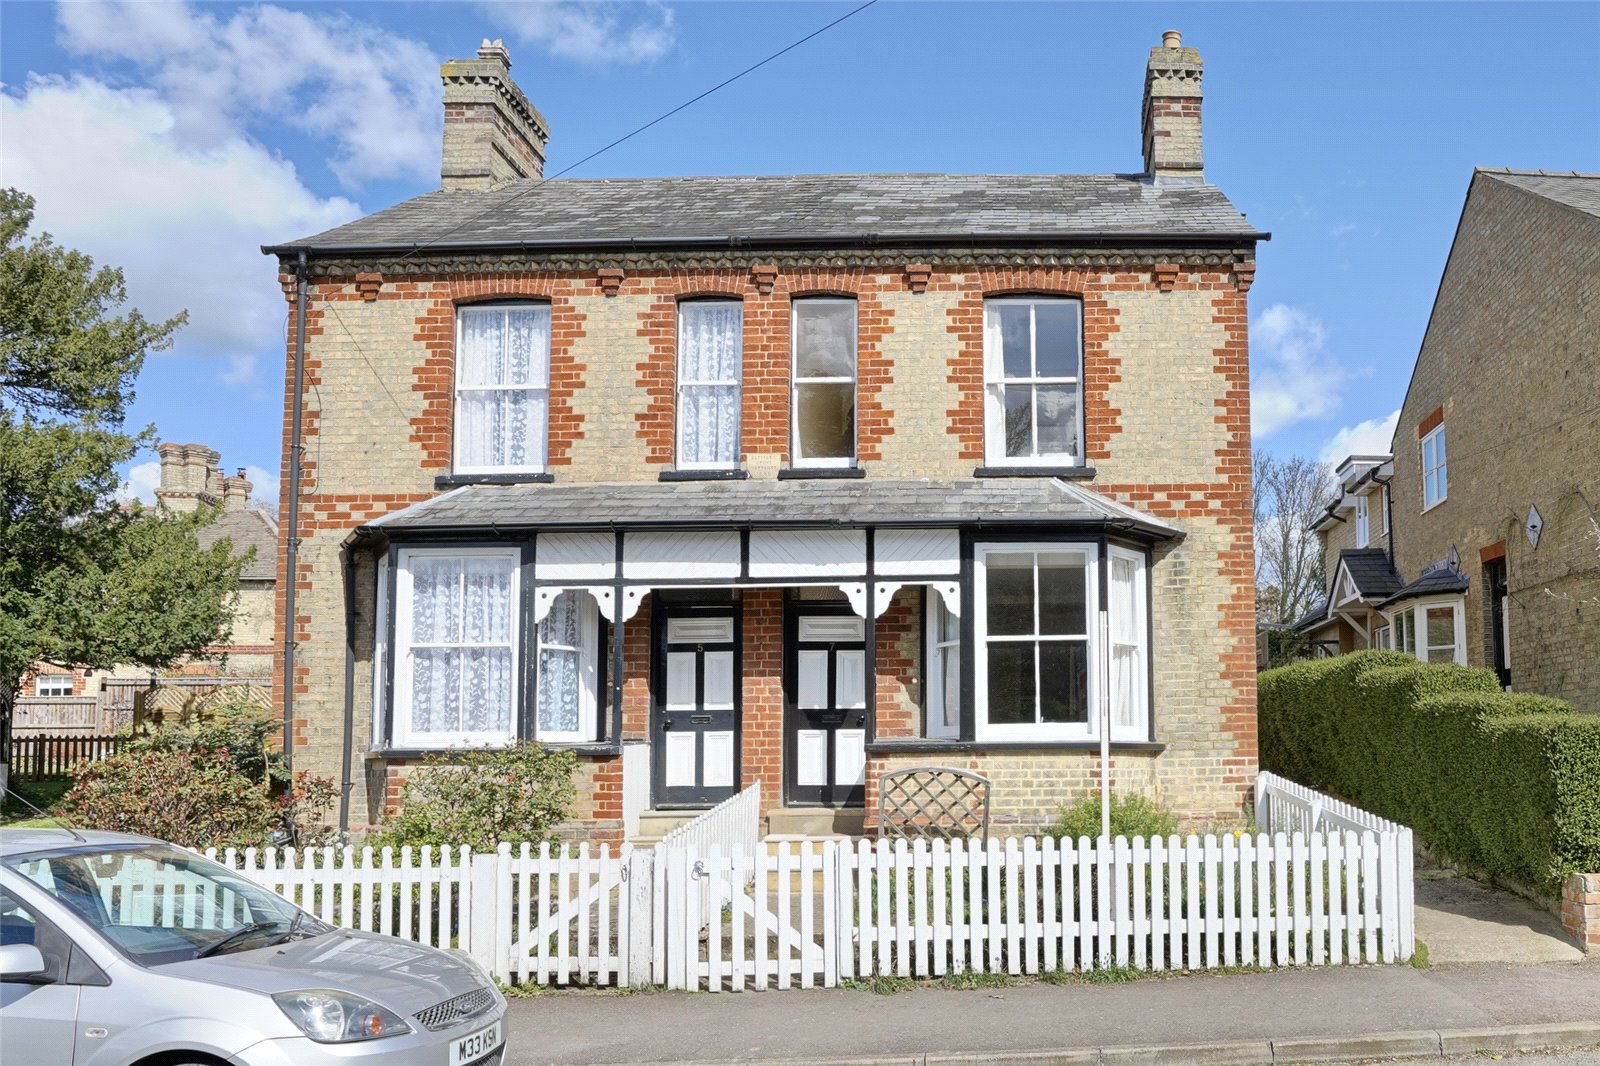 3 bed house for sale in Church Street, Great Gransden - Property Image 1